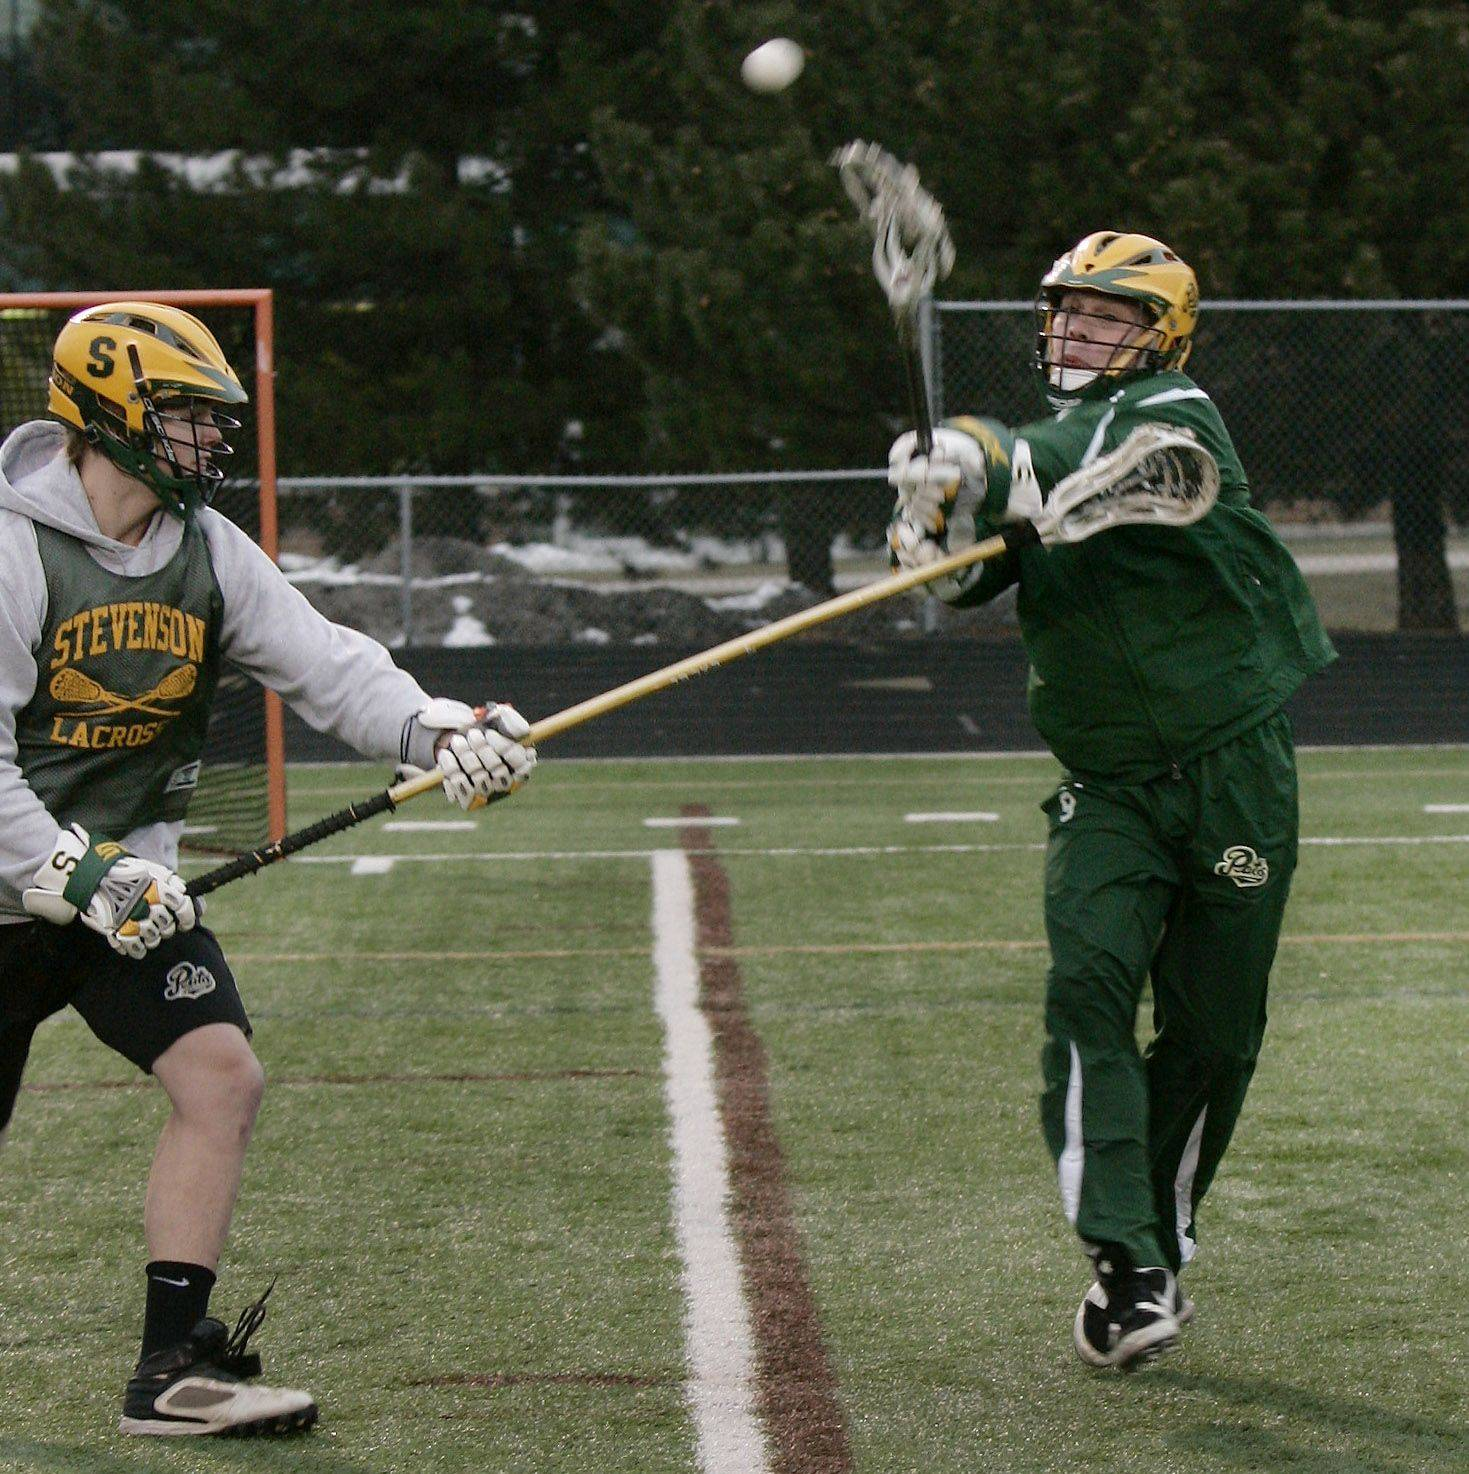 Midfielder Ryan Spitzer passes the ball past defender Eric Brasier during the boys lacrosse team practice at Stevenson High School in Lincolnshire.